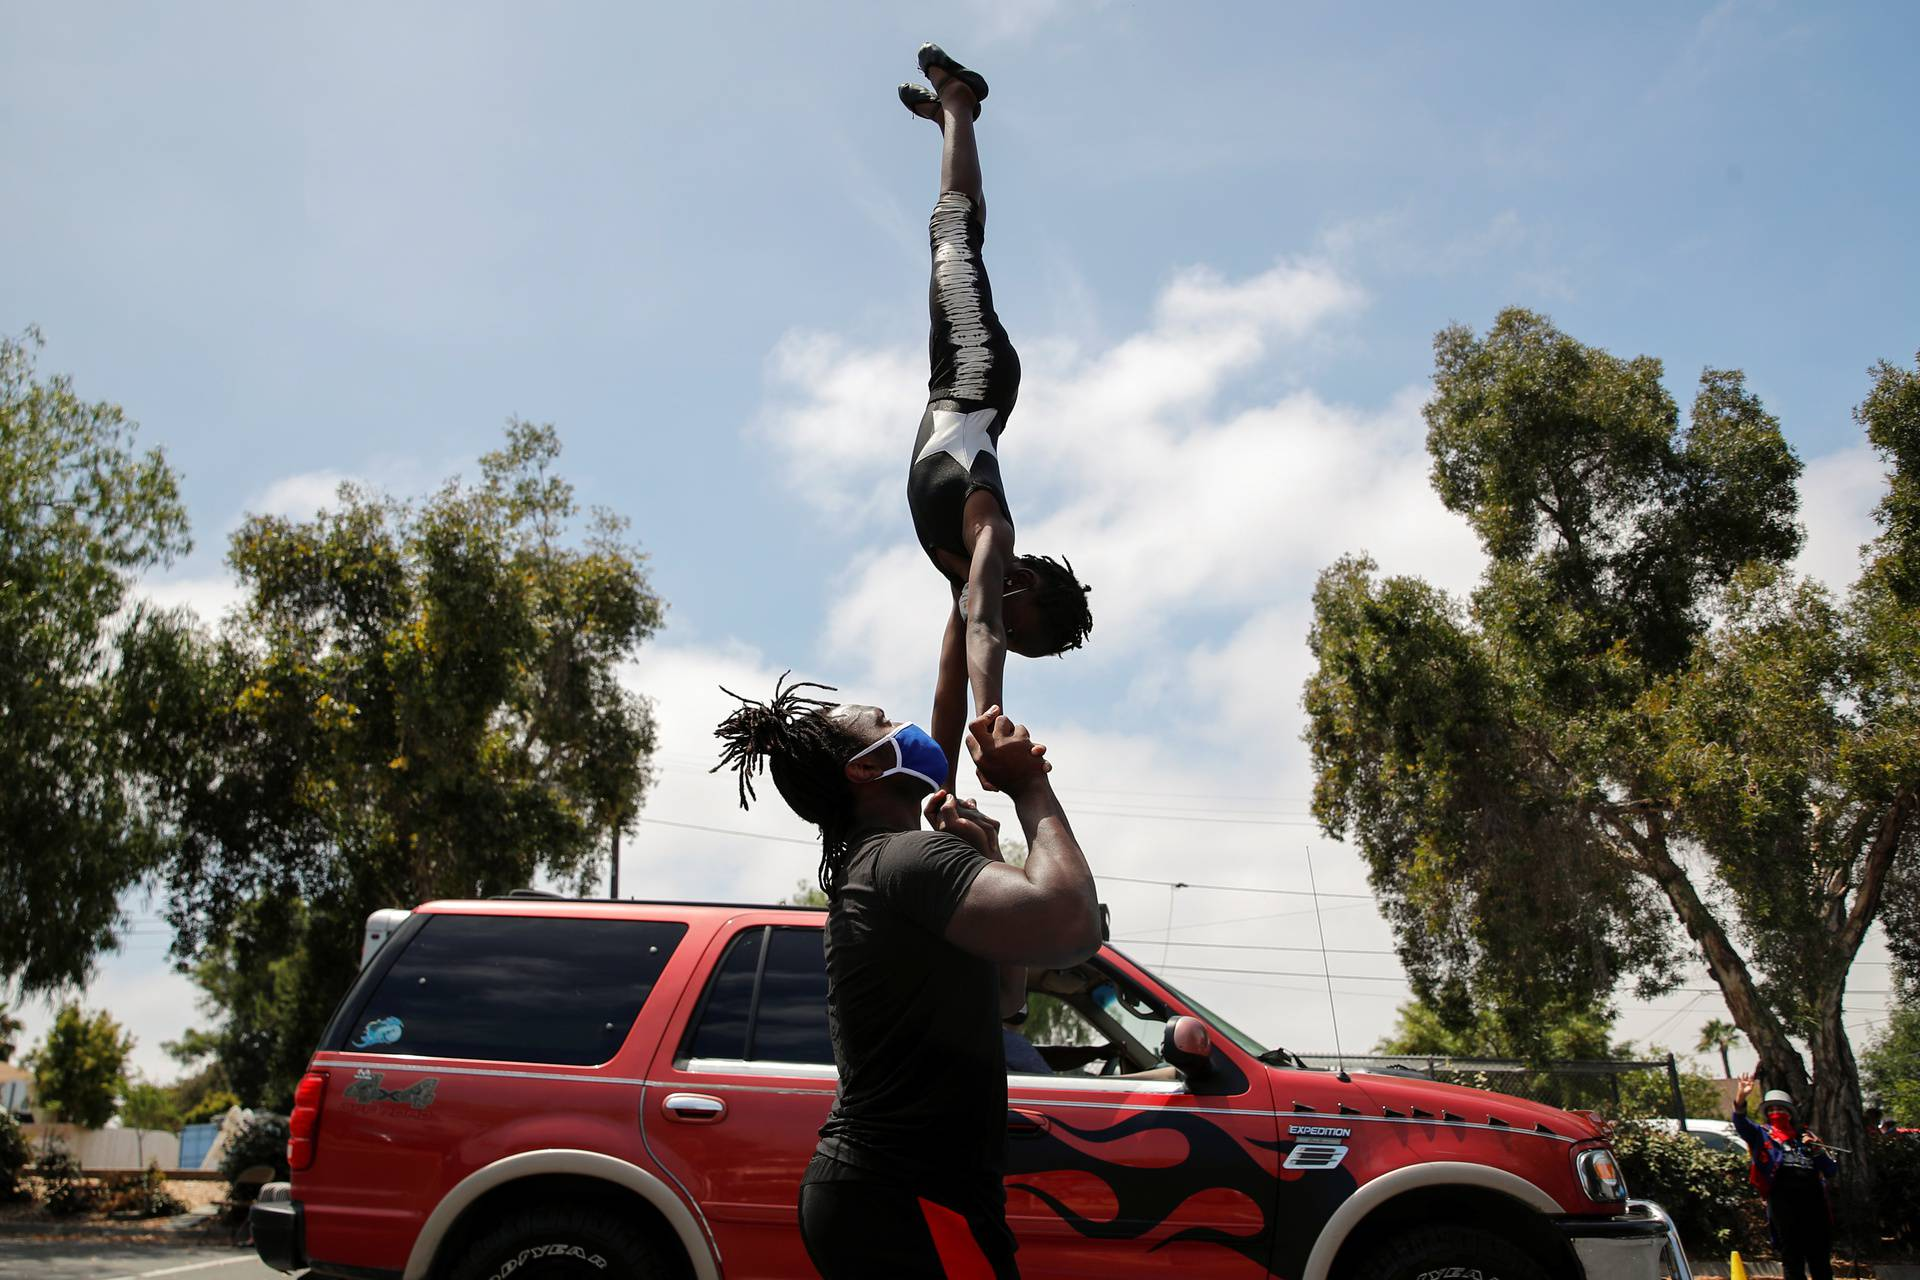 Circus performers intertain kids and parents in food bank drive therough line in San Diego